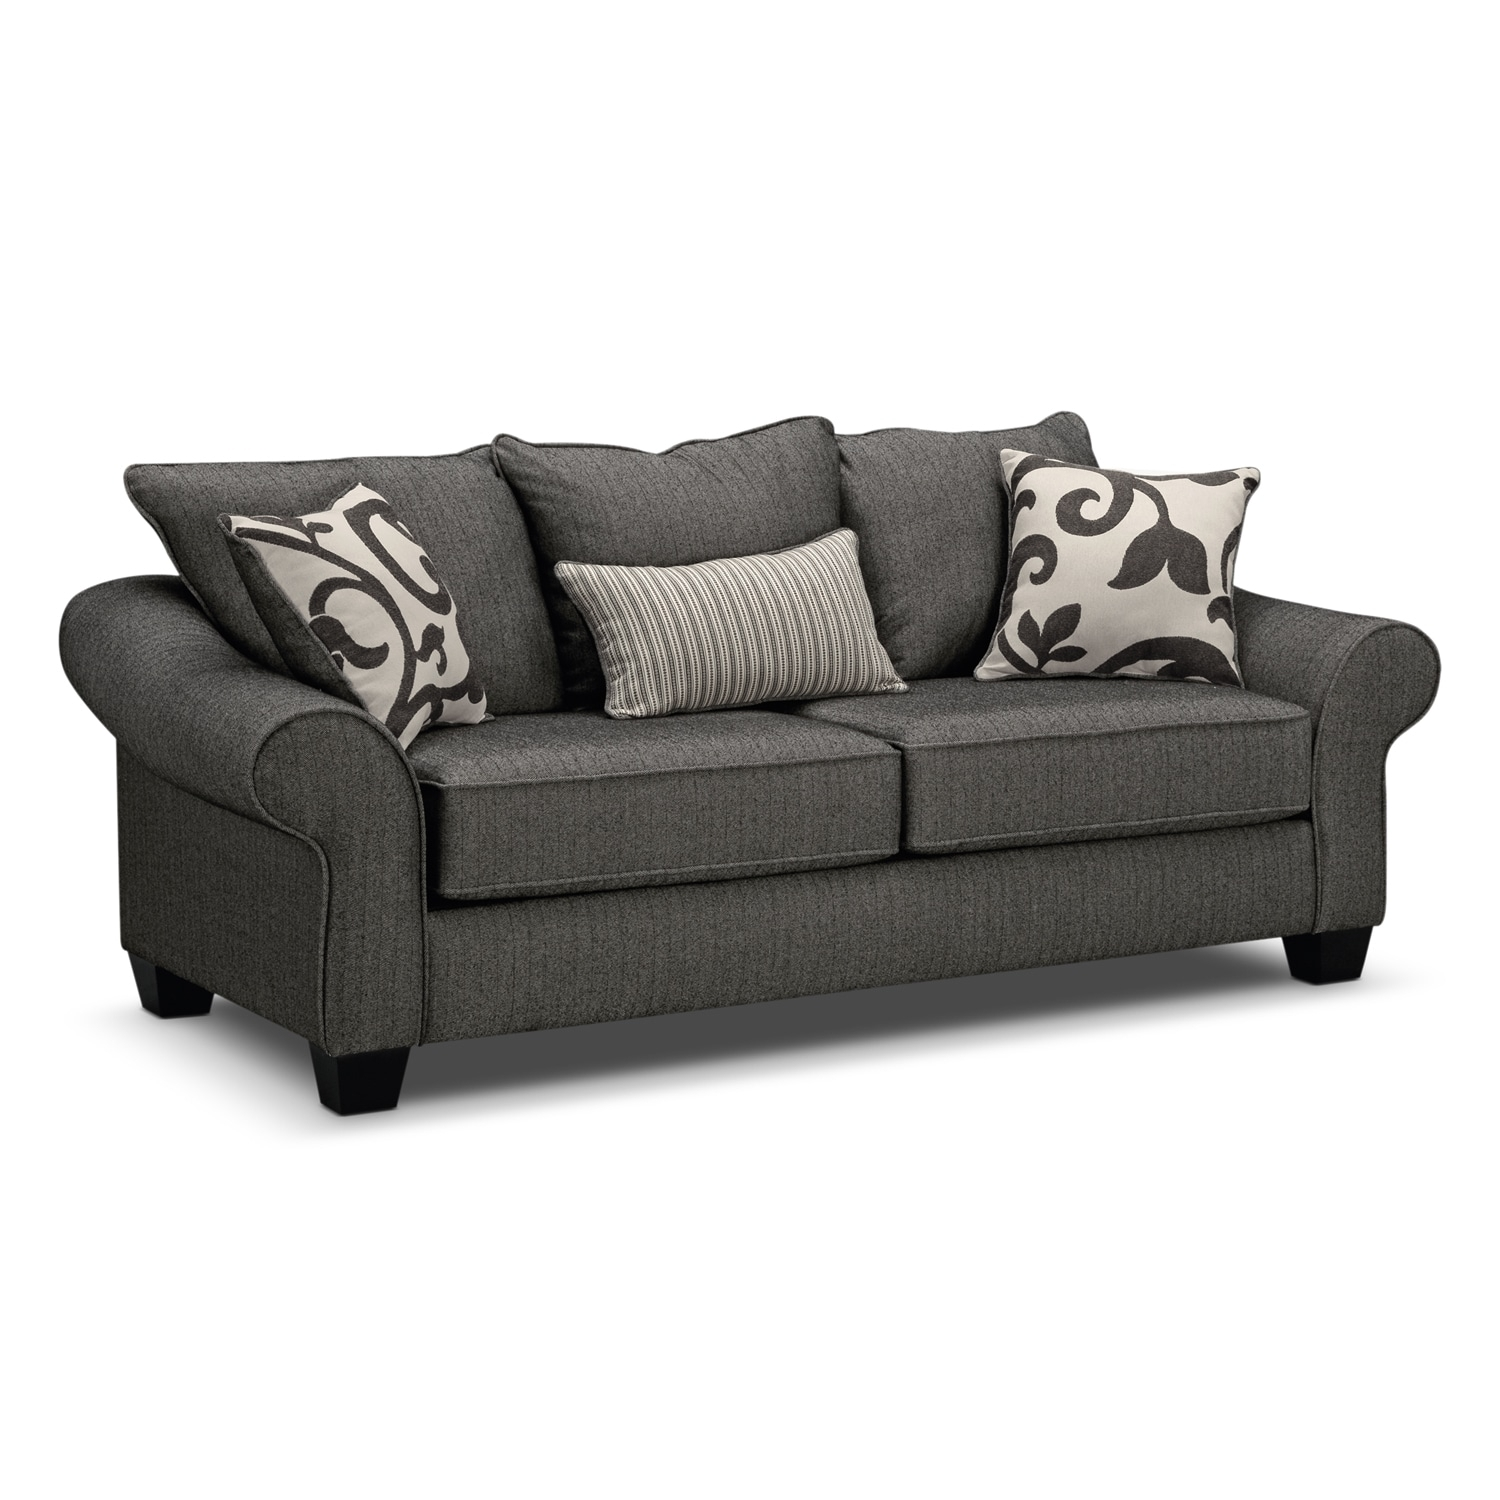 Sofas & Couches | Living Room Seating | Value City Furniture And Within Harrisburg Pa Sectional Sofas (Image 9 of 10)